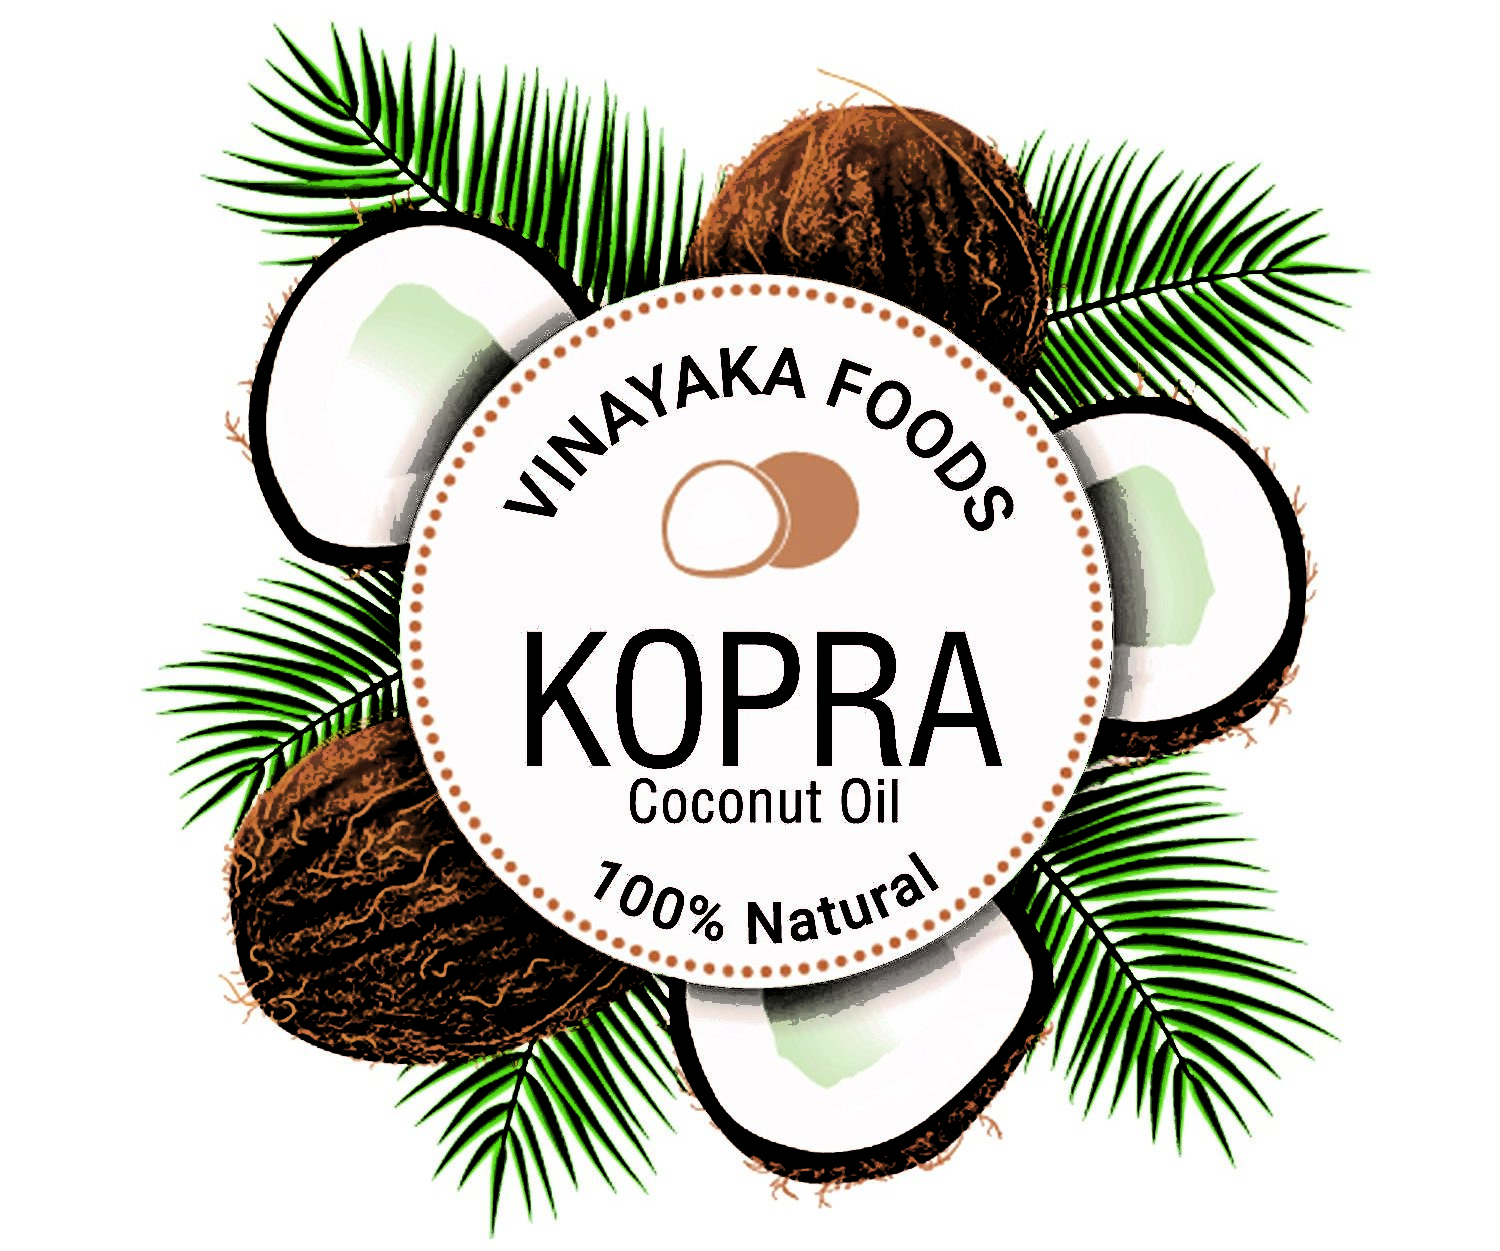 Kopra Pure Coconut Oil